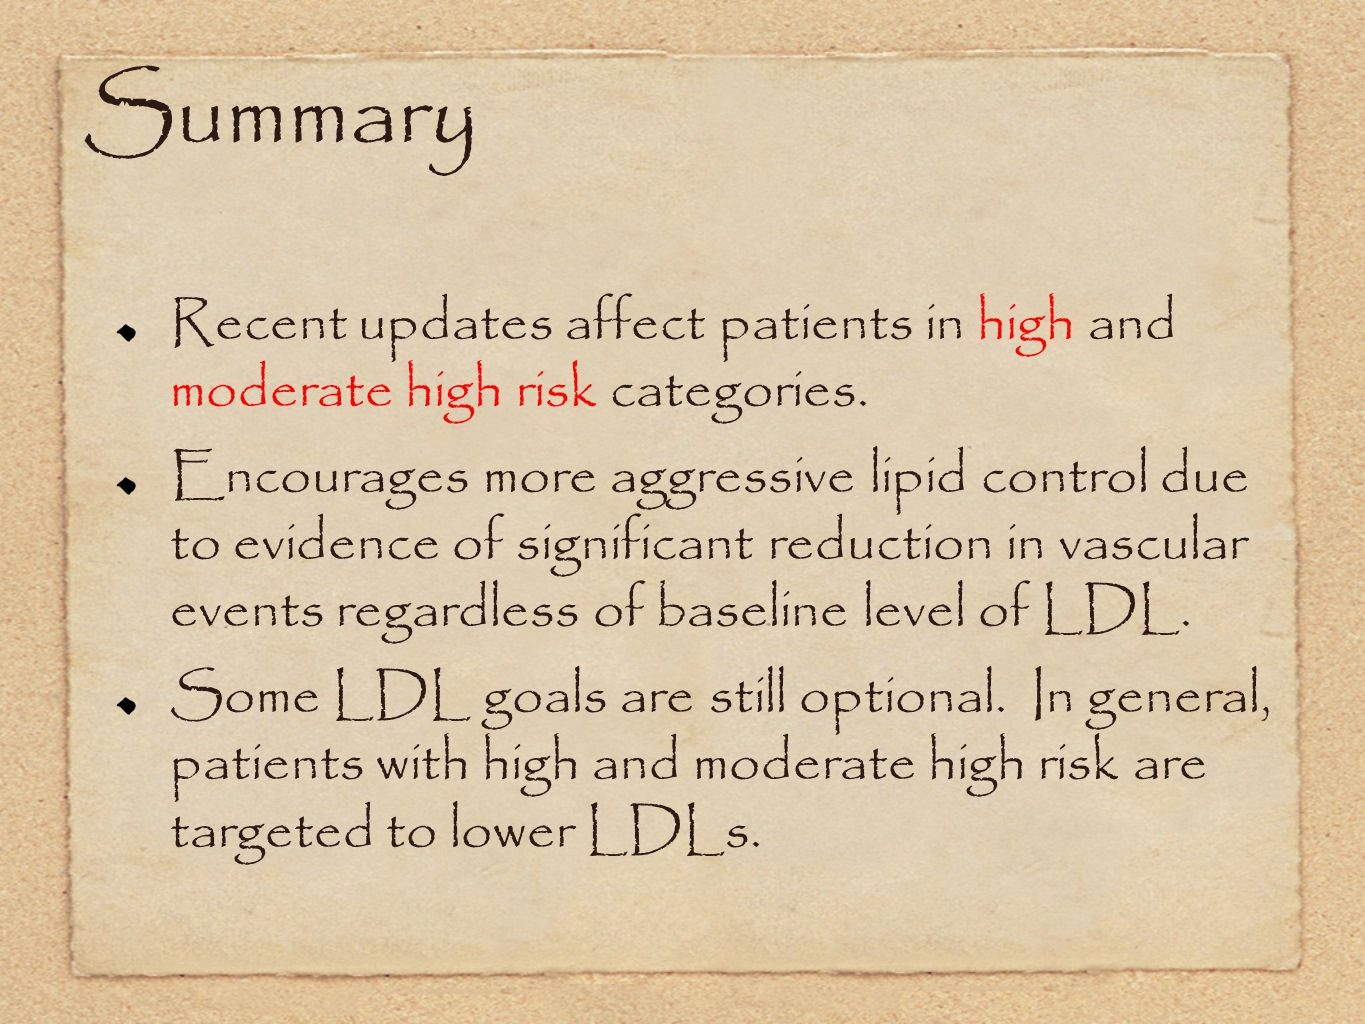 Summary Recent updates affect patients in high and moderate high risk categories.